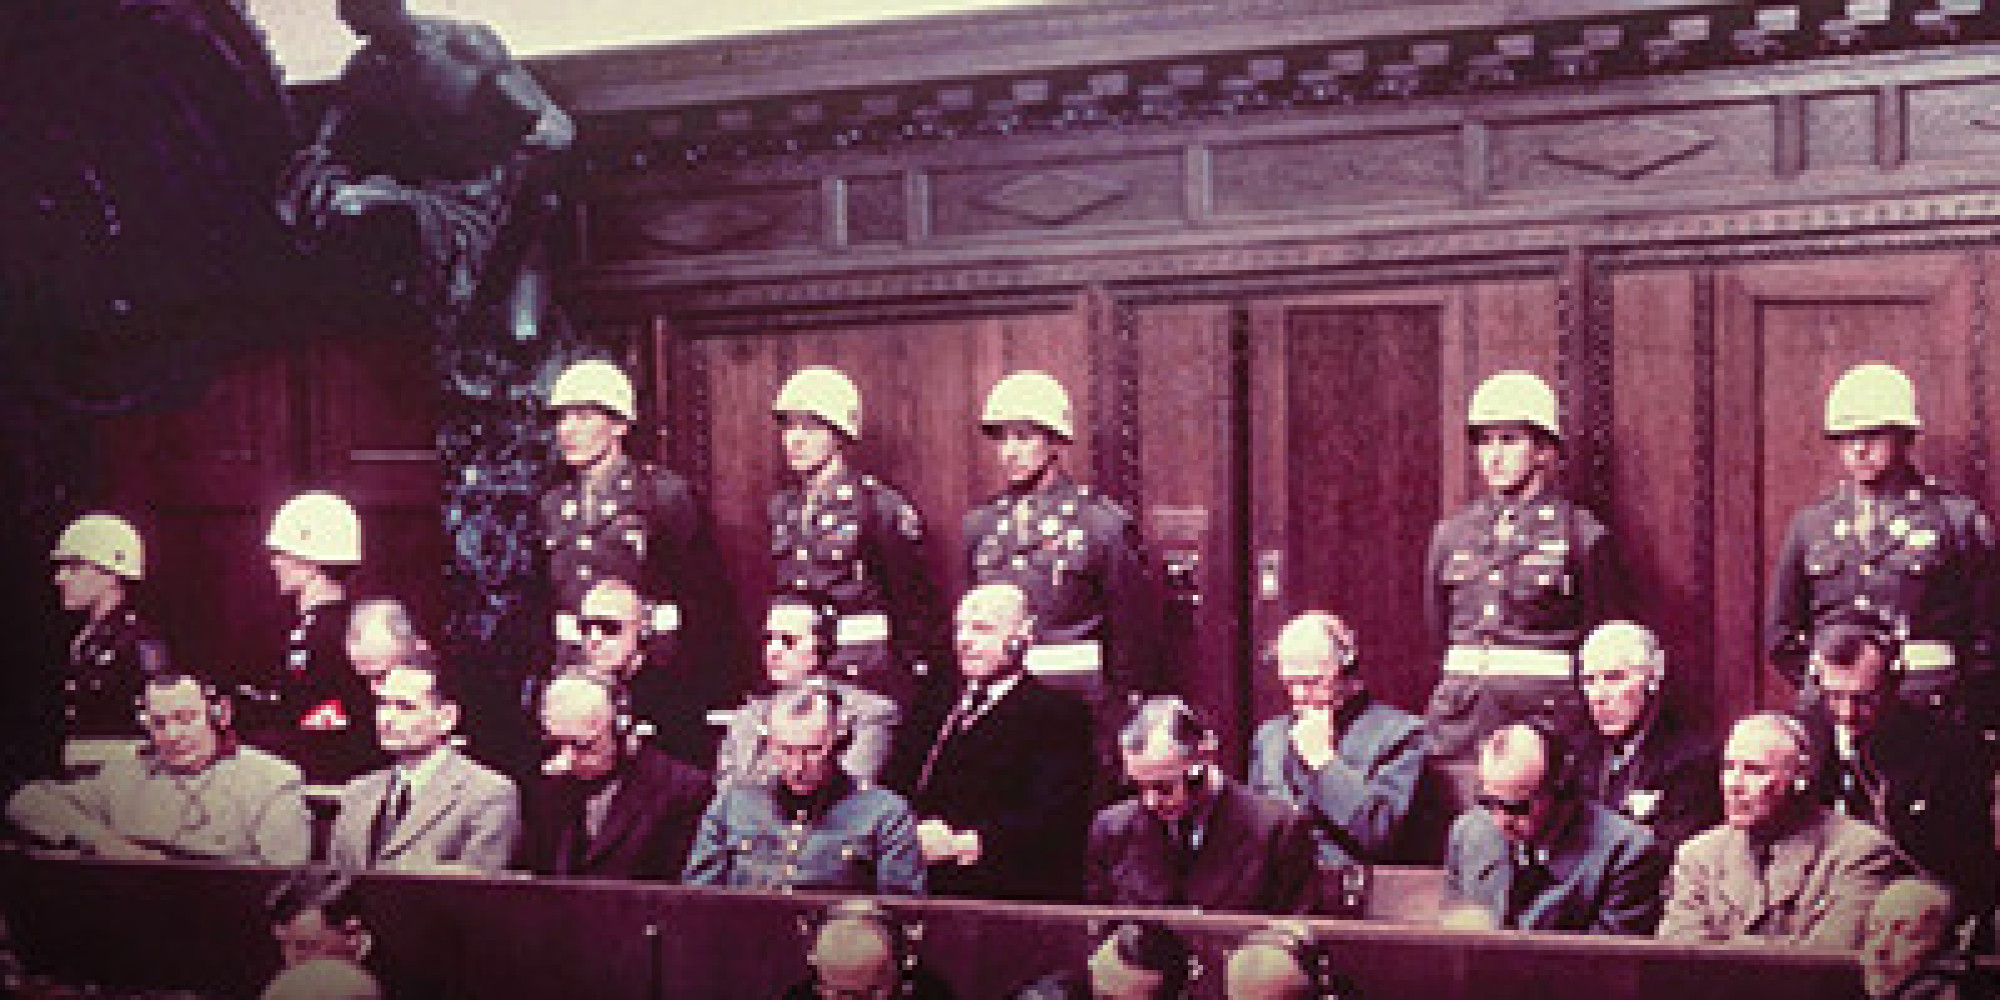 henry gerecke minister to nazis during nuremberg trials examined henry gerecke minister to nazis during nuremberg trials examined by tim townsend in new book the huffington post